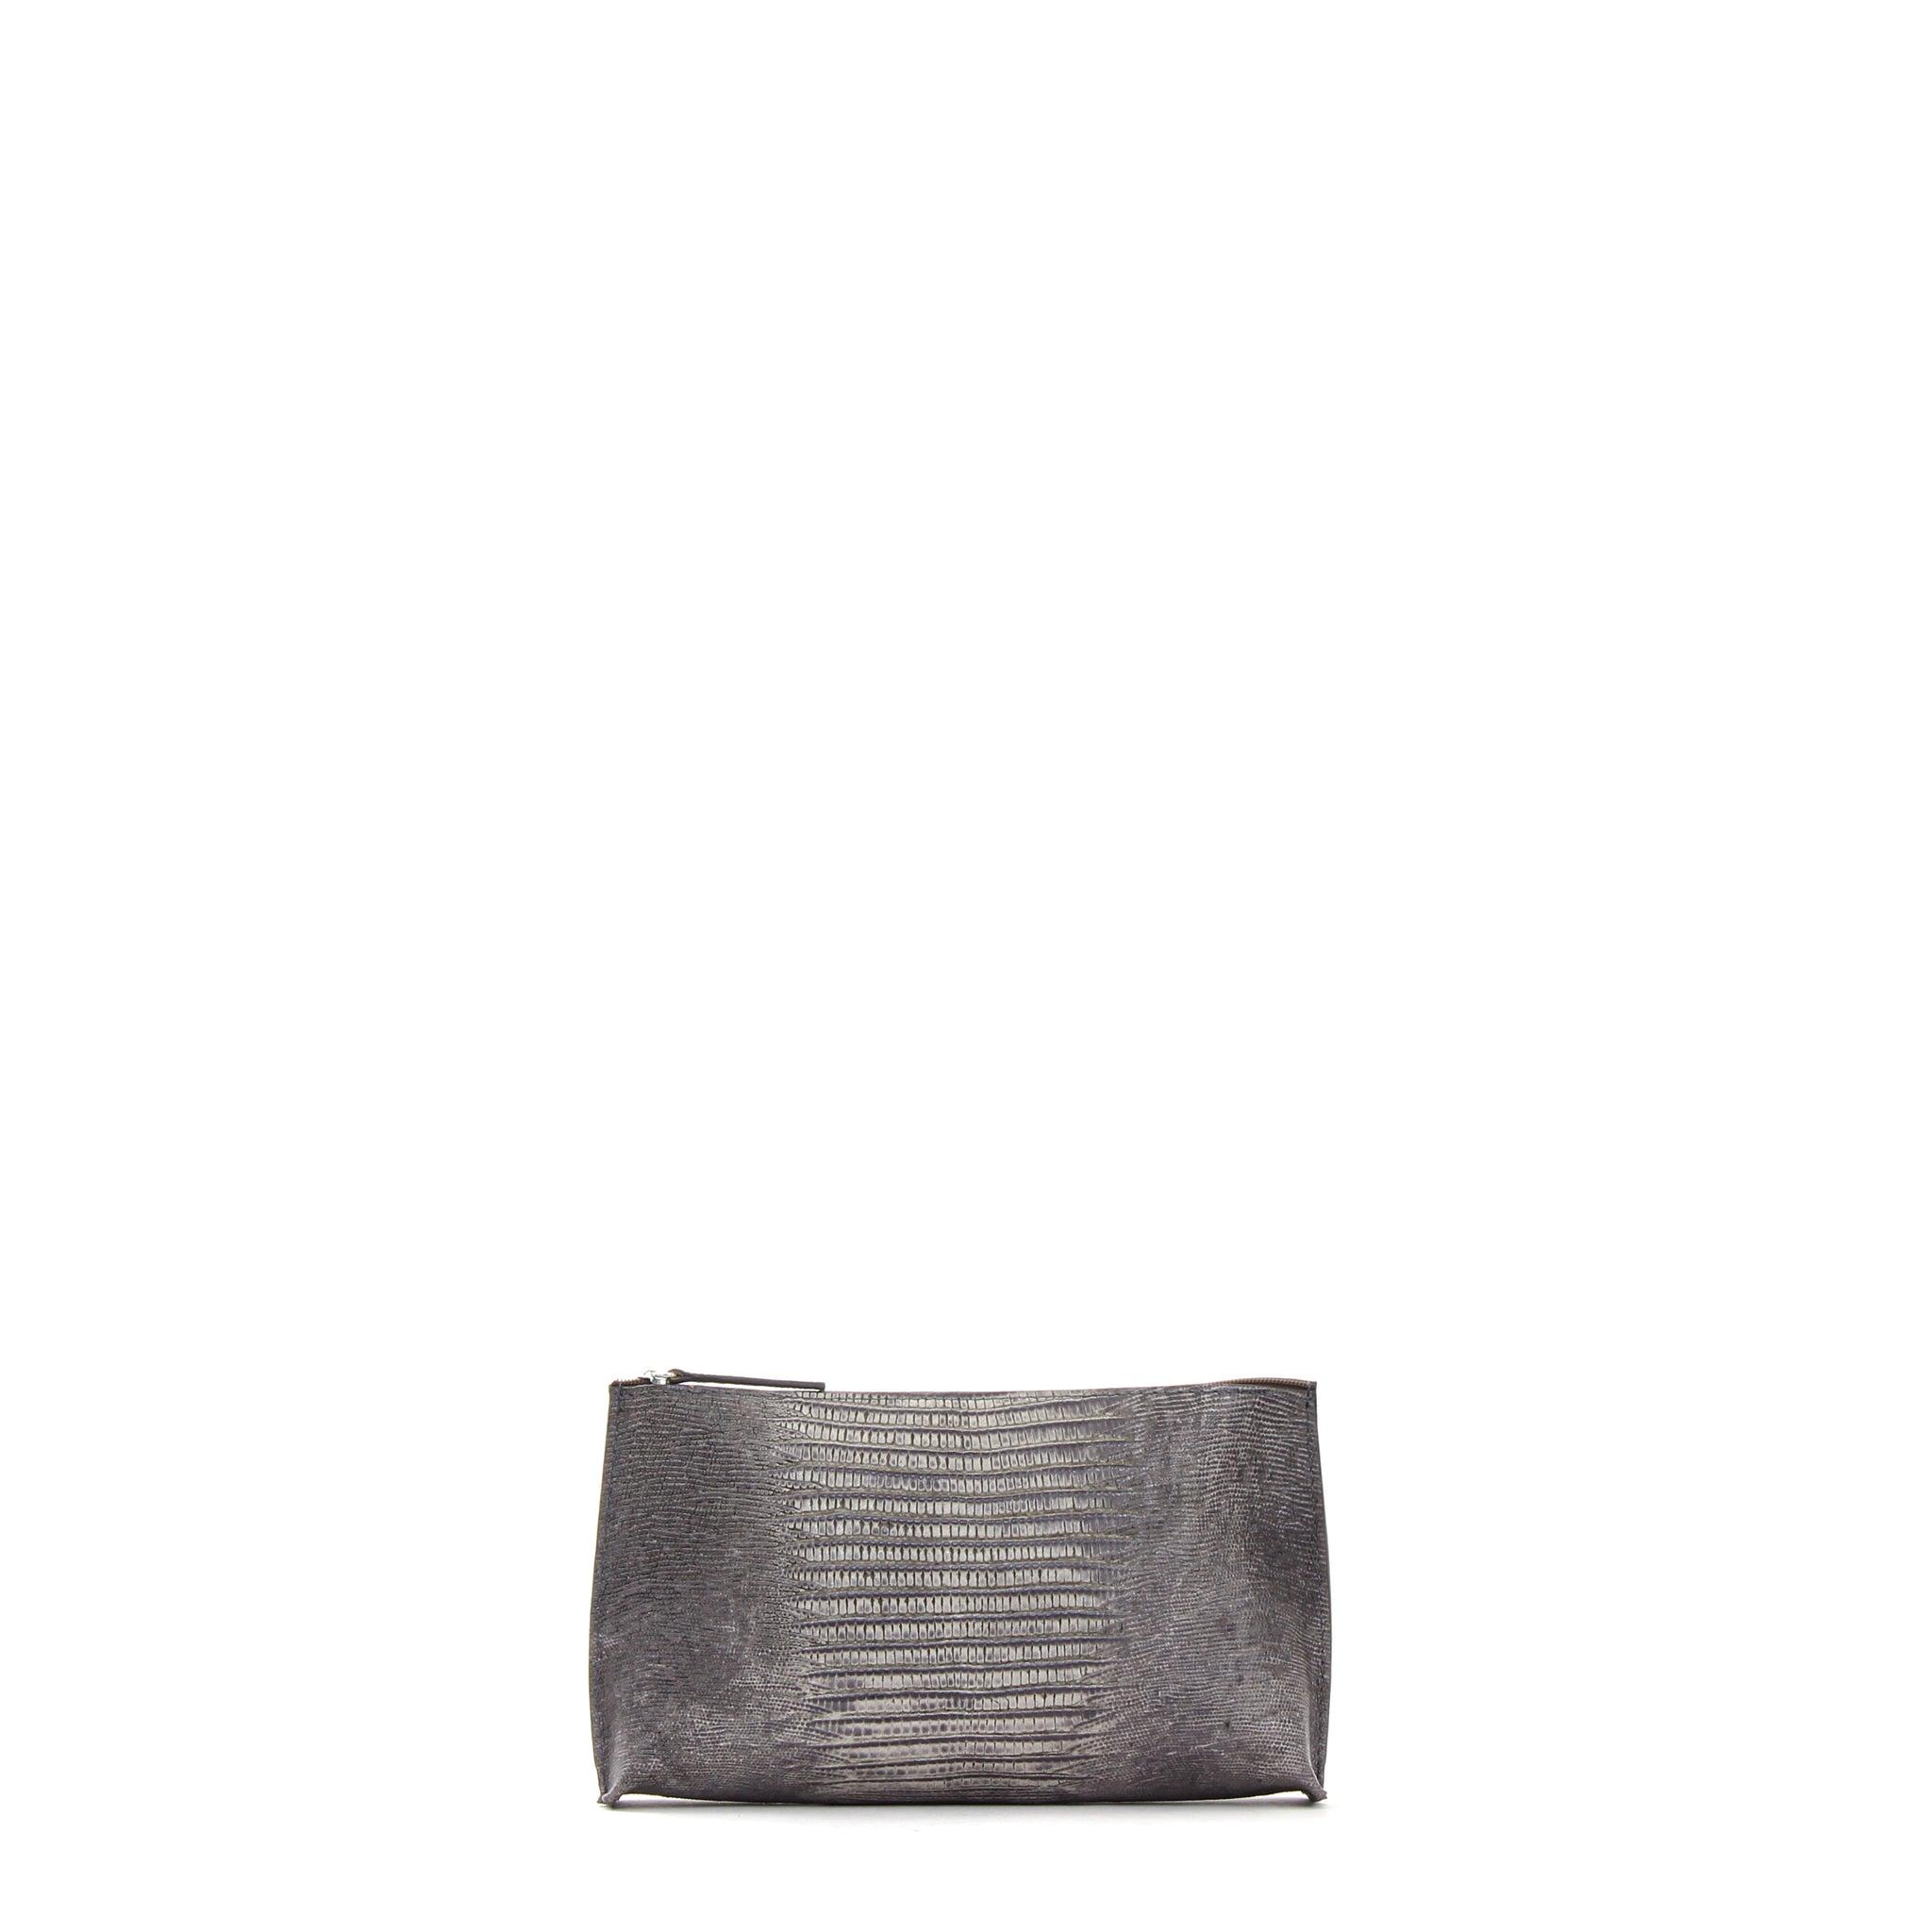 ESSENTIAL POUCH GREY EMBOSSED LIZARD